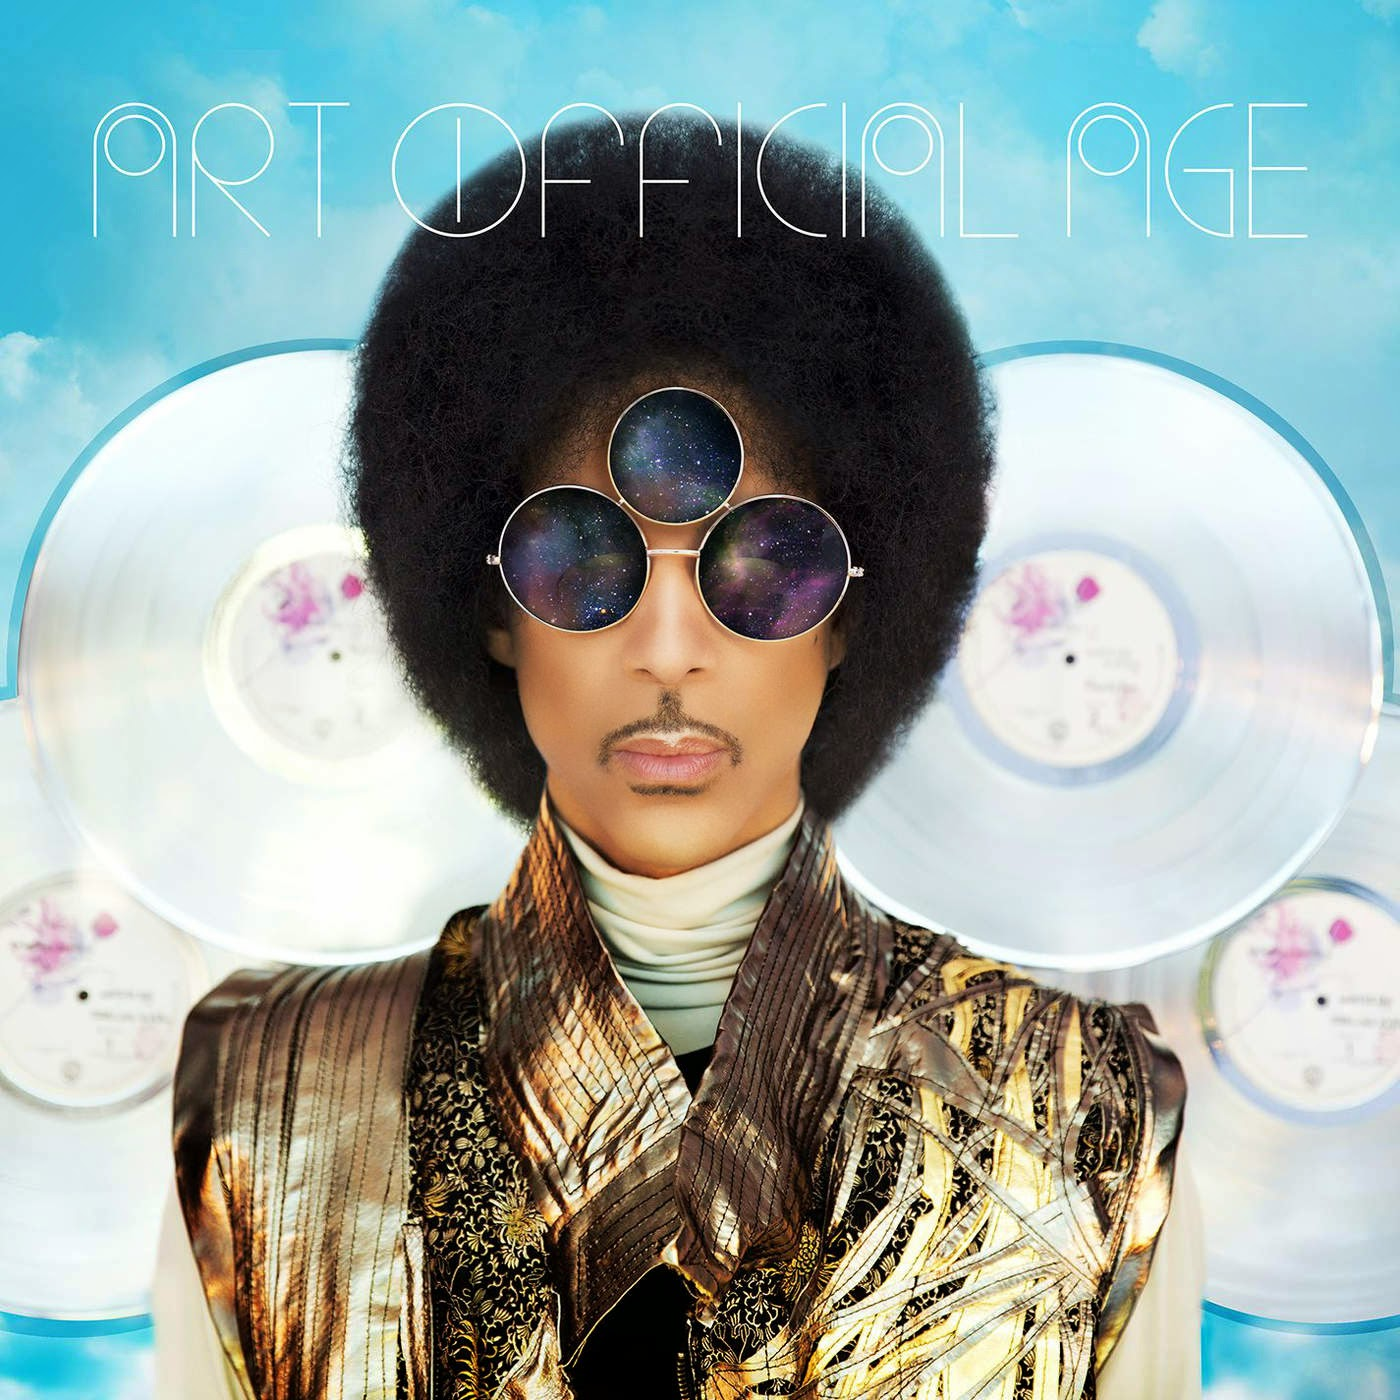 c7f68295bf prince-art-official-age. Prince s last proper album with a wide release was  ...